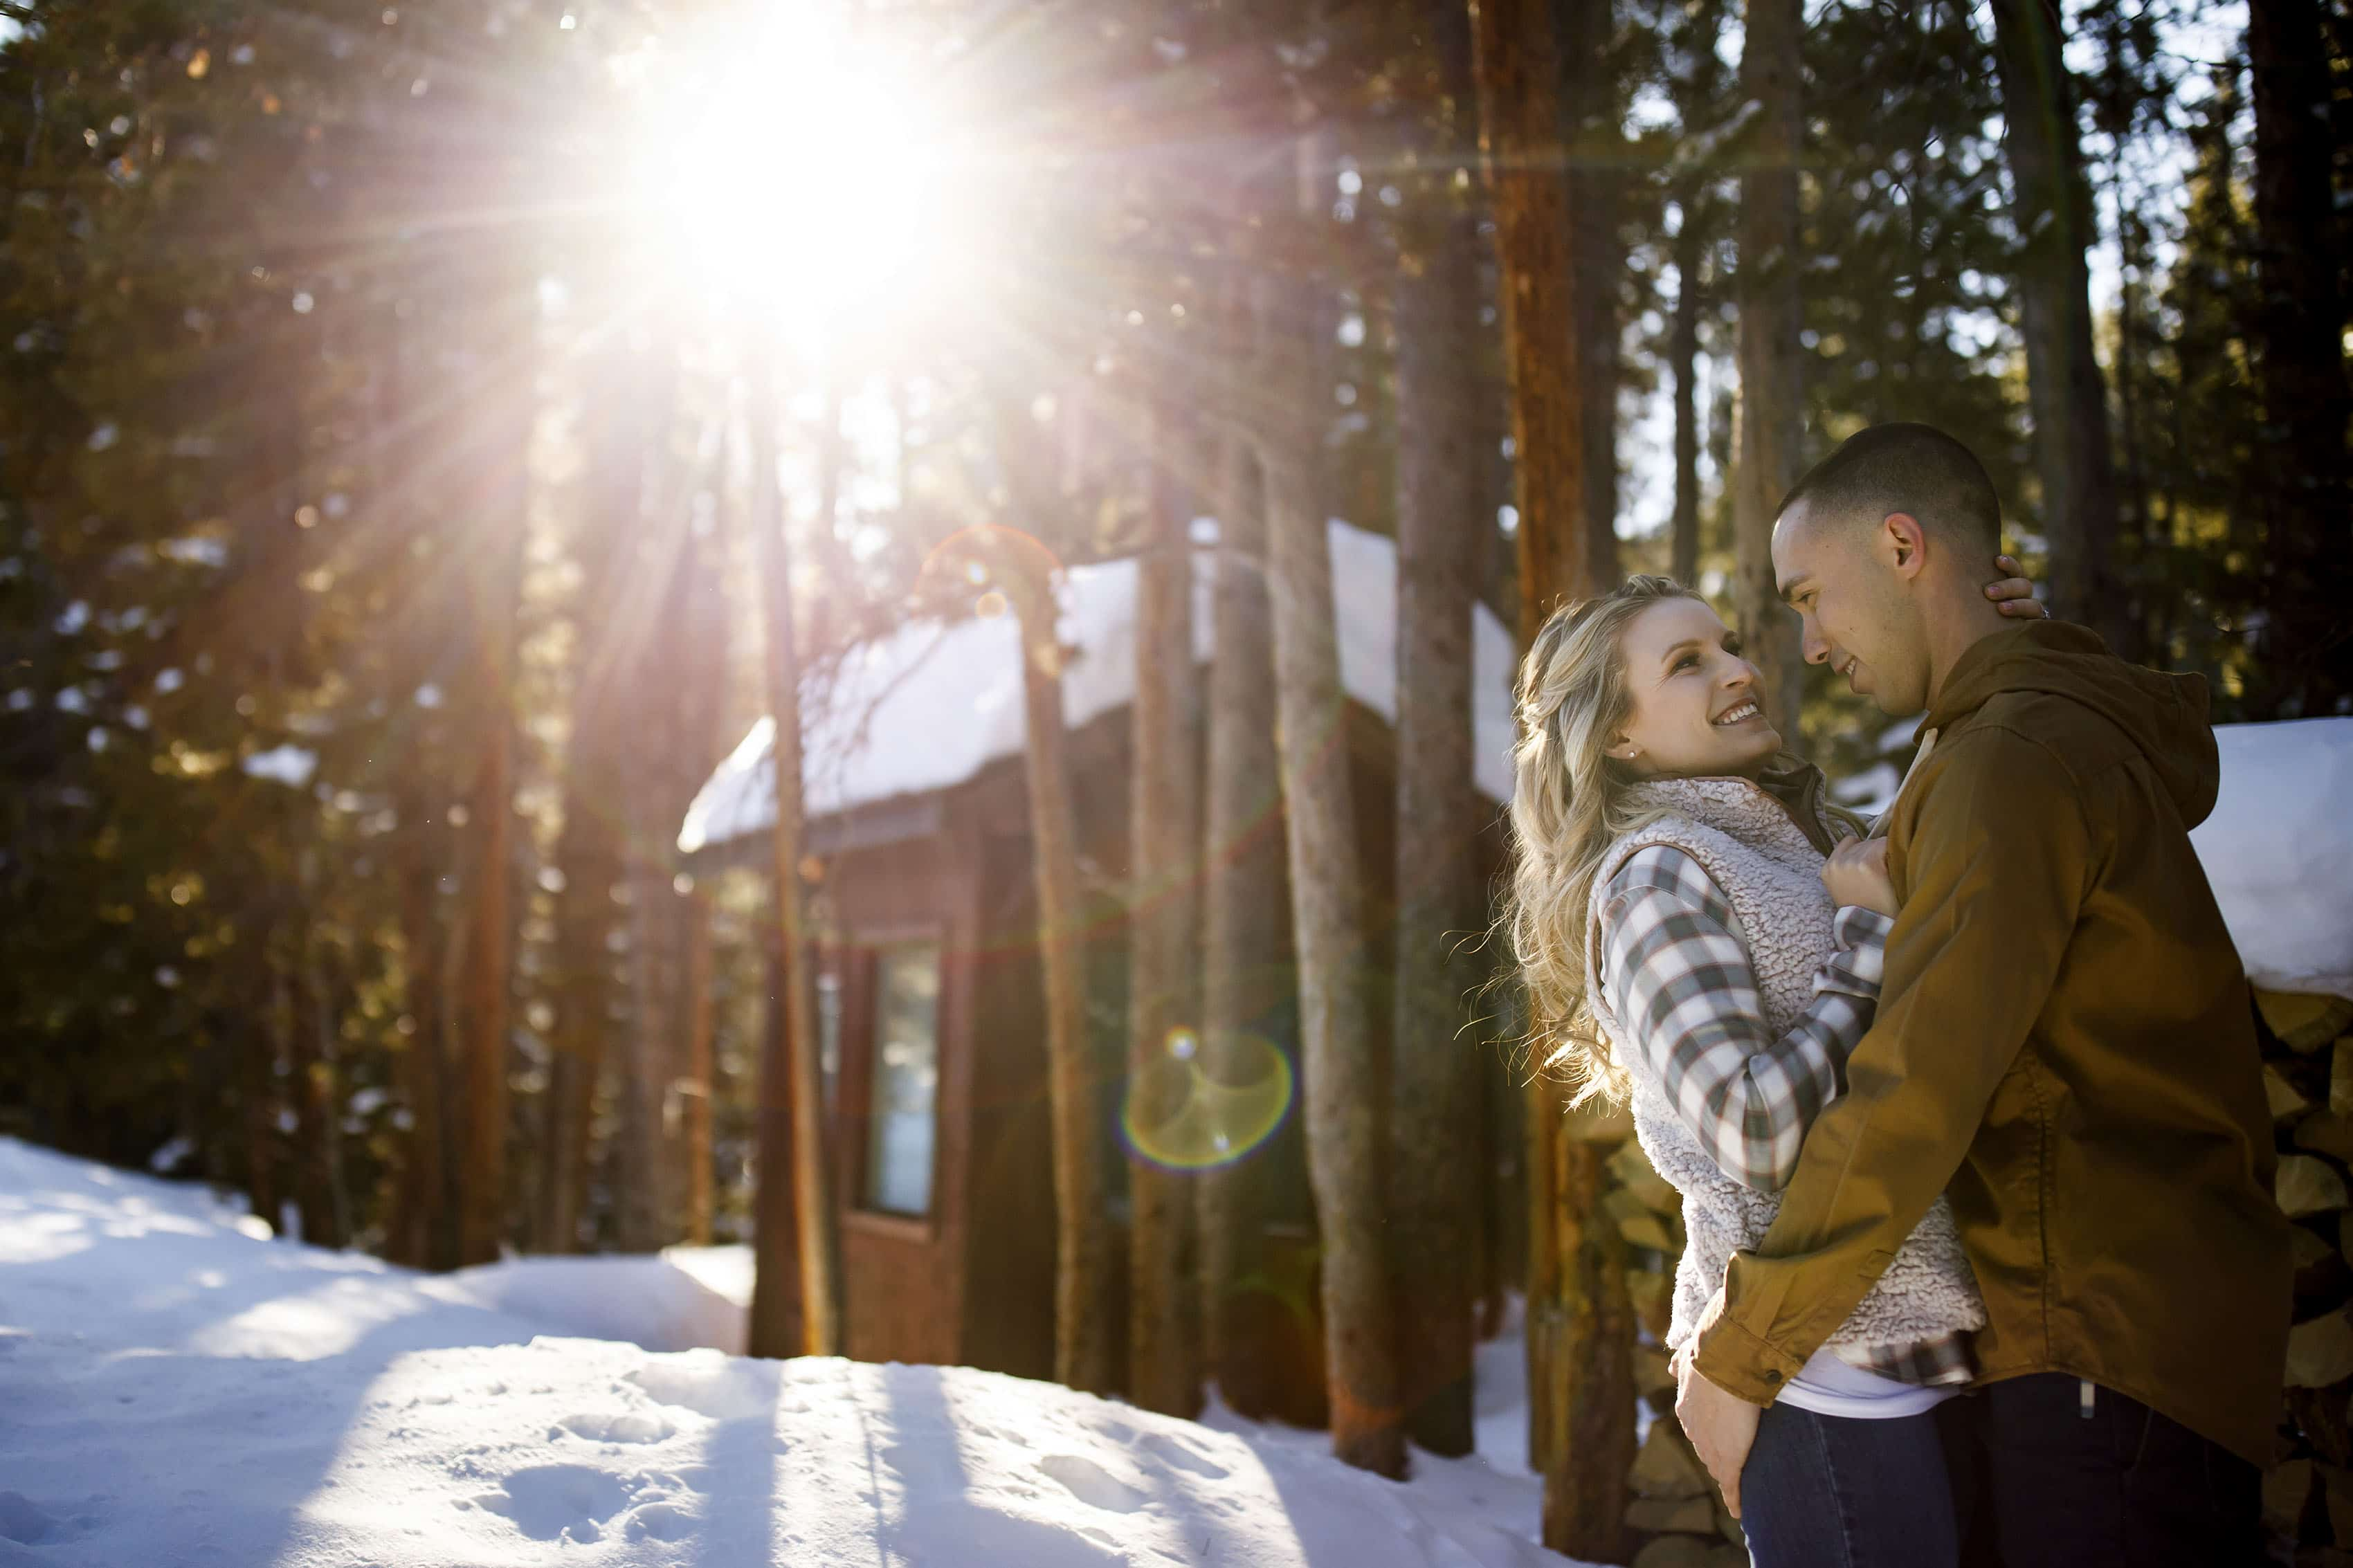 Shane and Cassidy embrace as the sunlight filters through the trees at Sawmill reservoir in Breckenridge during their winter engagement session